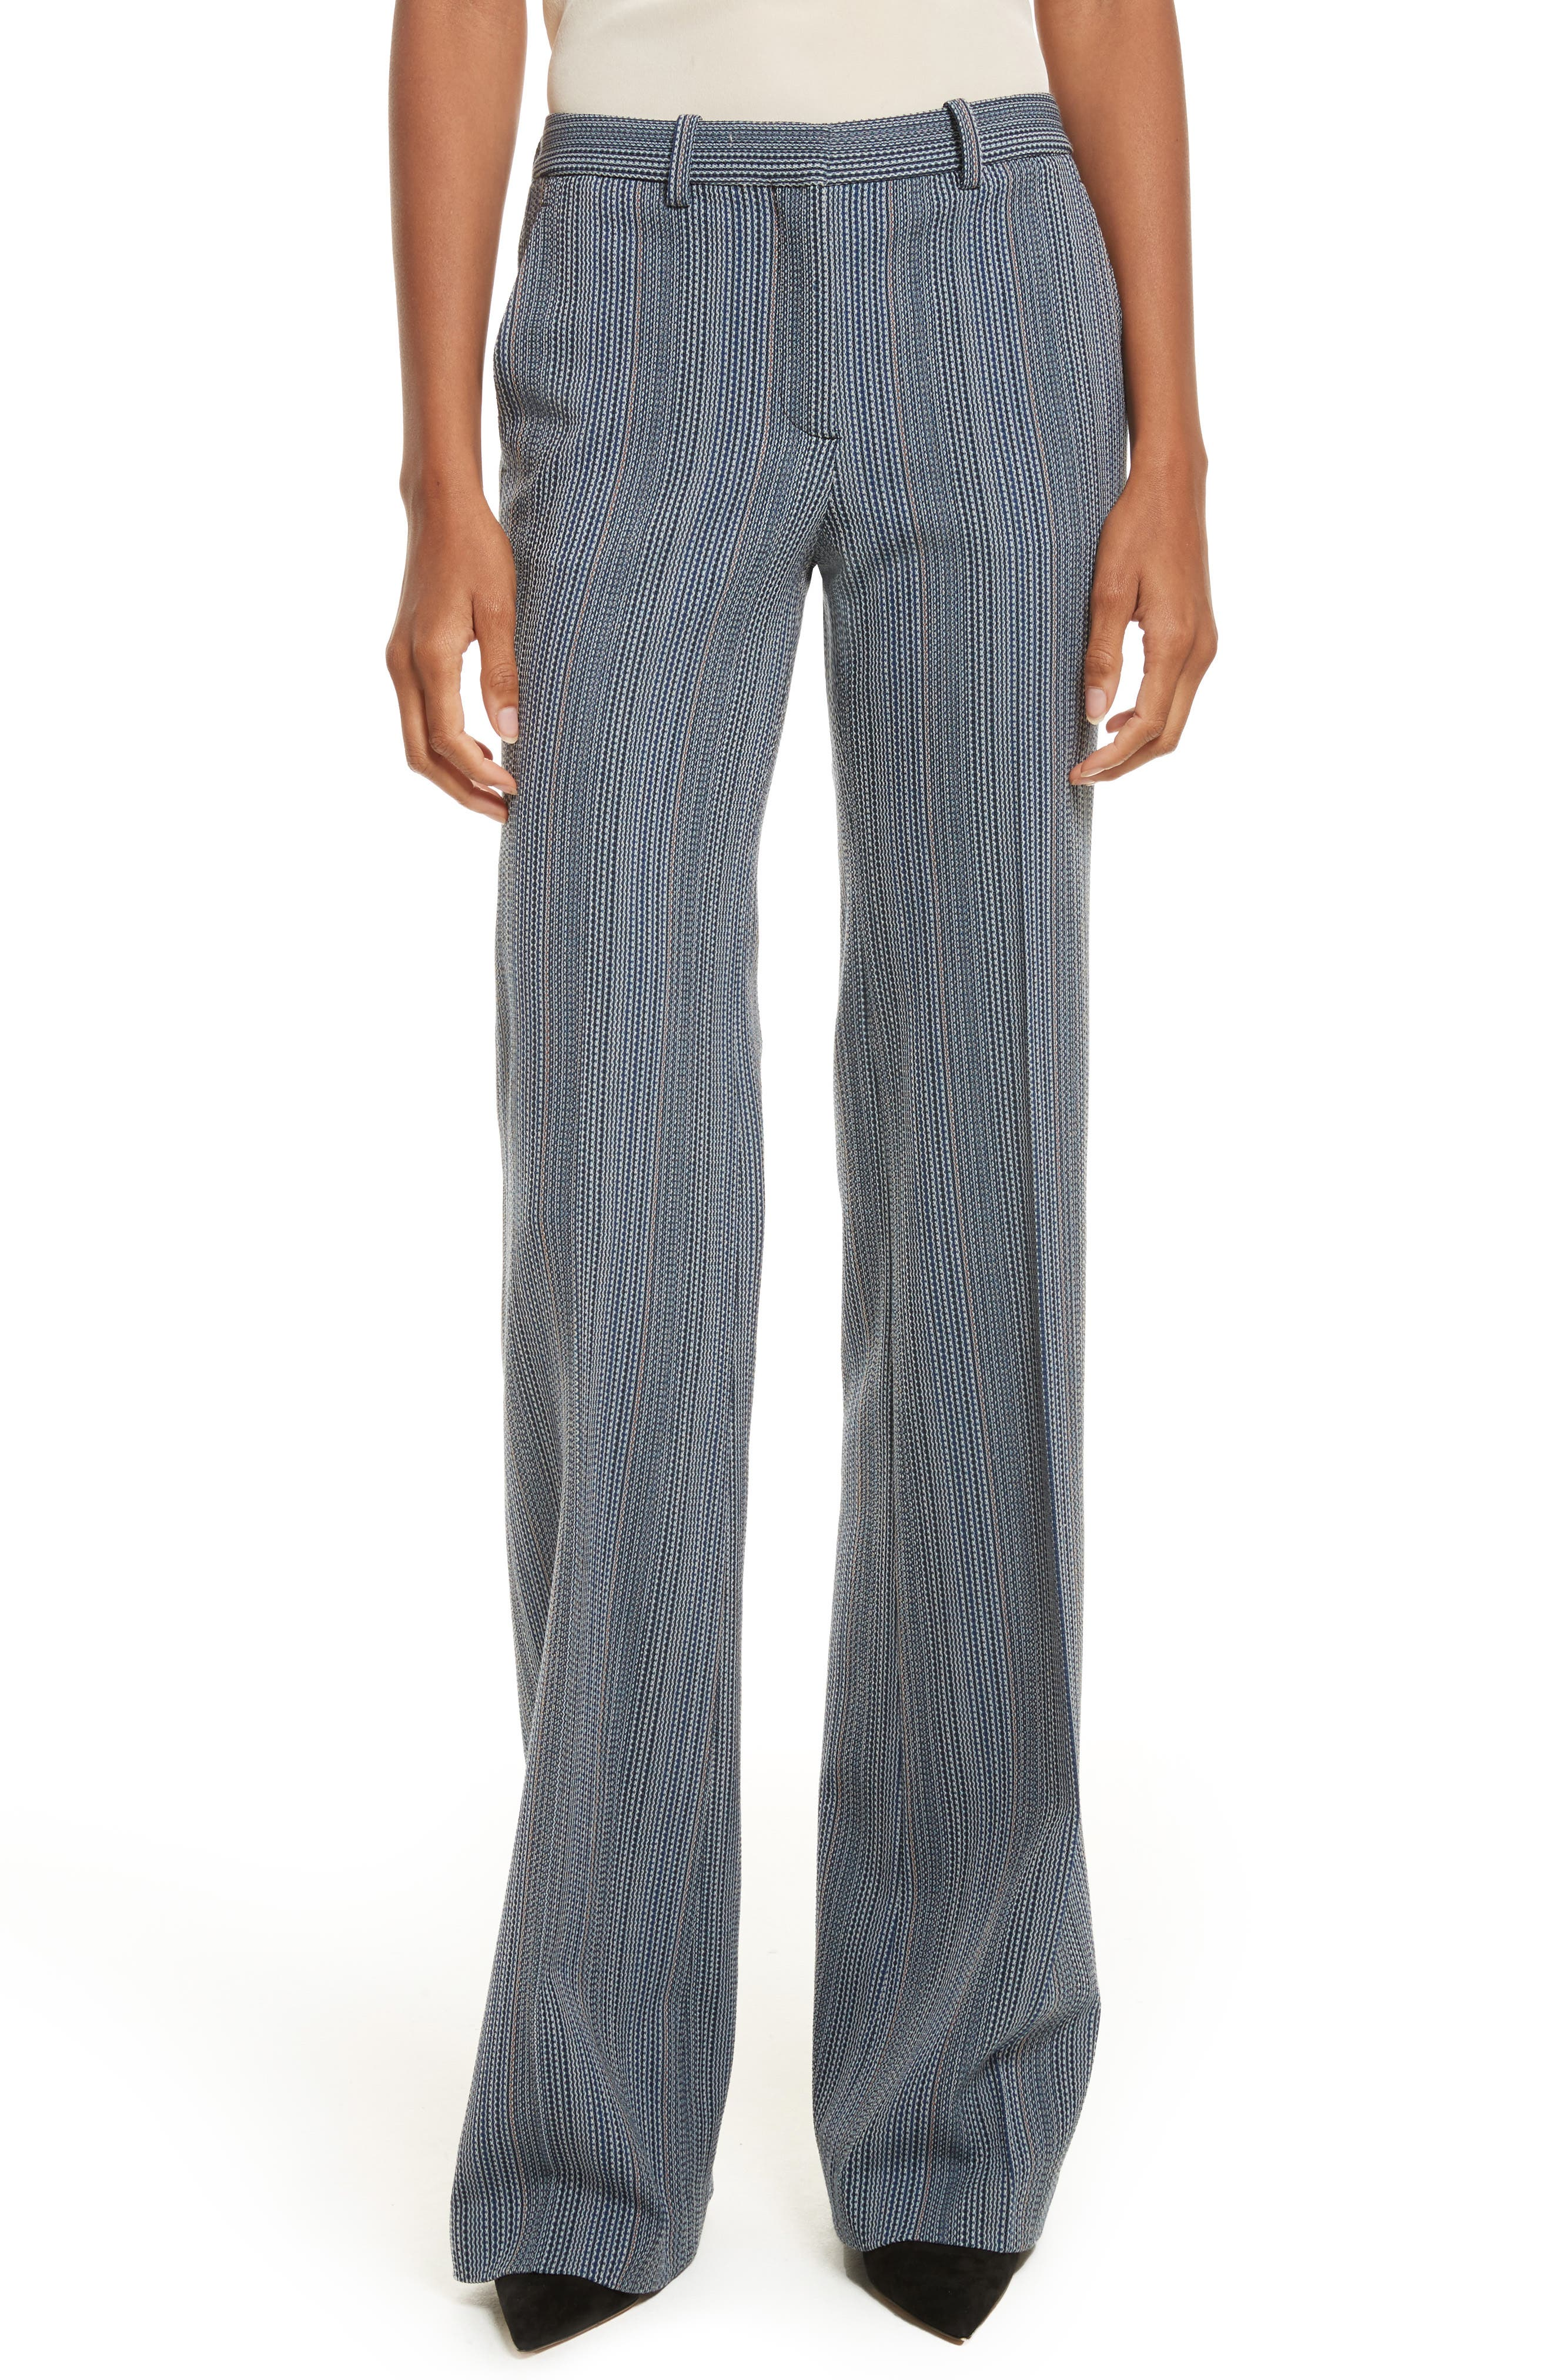 Demitria 2 Eldora Stripe Pants,                         Main,                         color, Indigo Multi